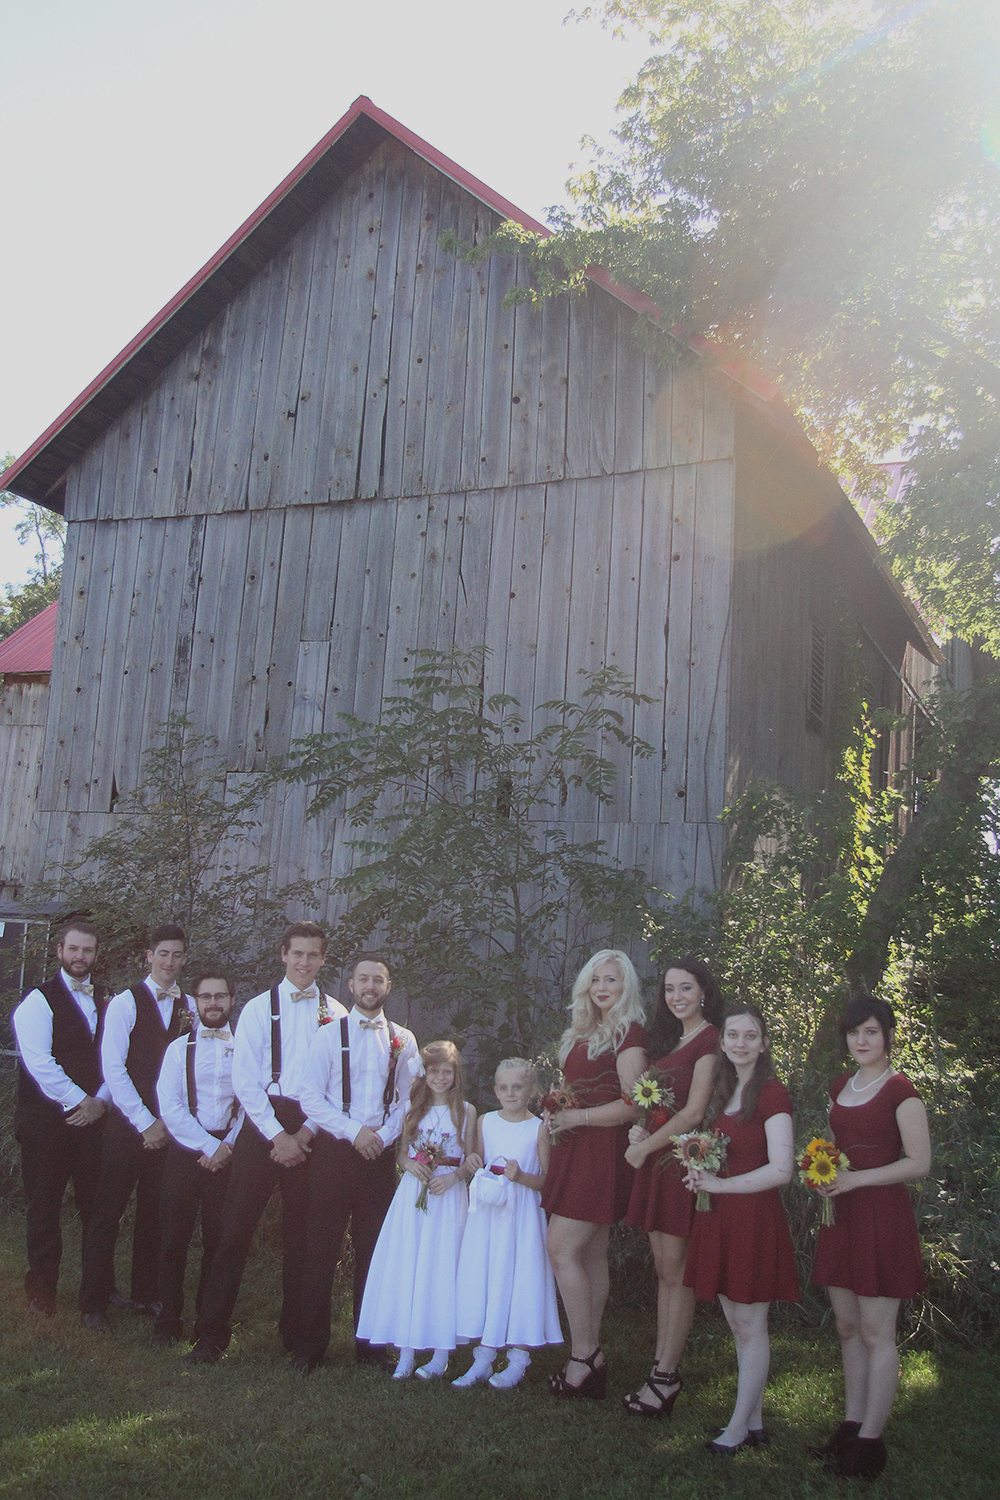 Matt Esckelson Rachel Esckelson John Leach Nicholas Paul Nick Paul Aubrey Ann parker photography bridal party photo Northern Michigan wedding Leelanau County wedding photographer